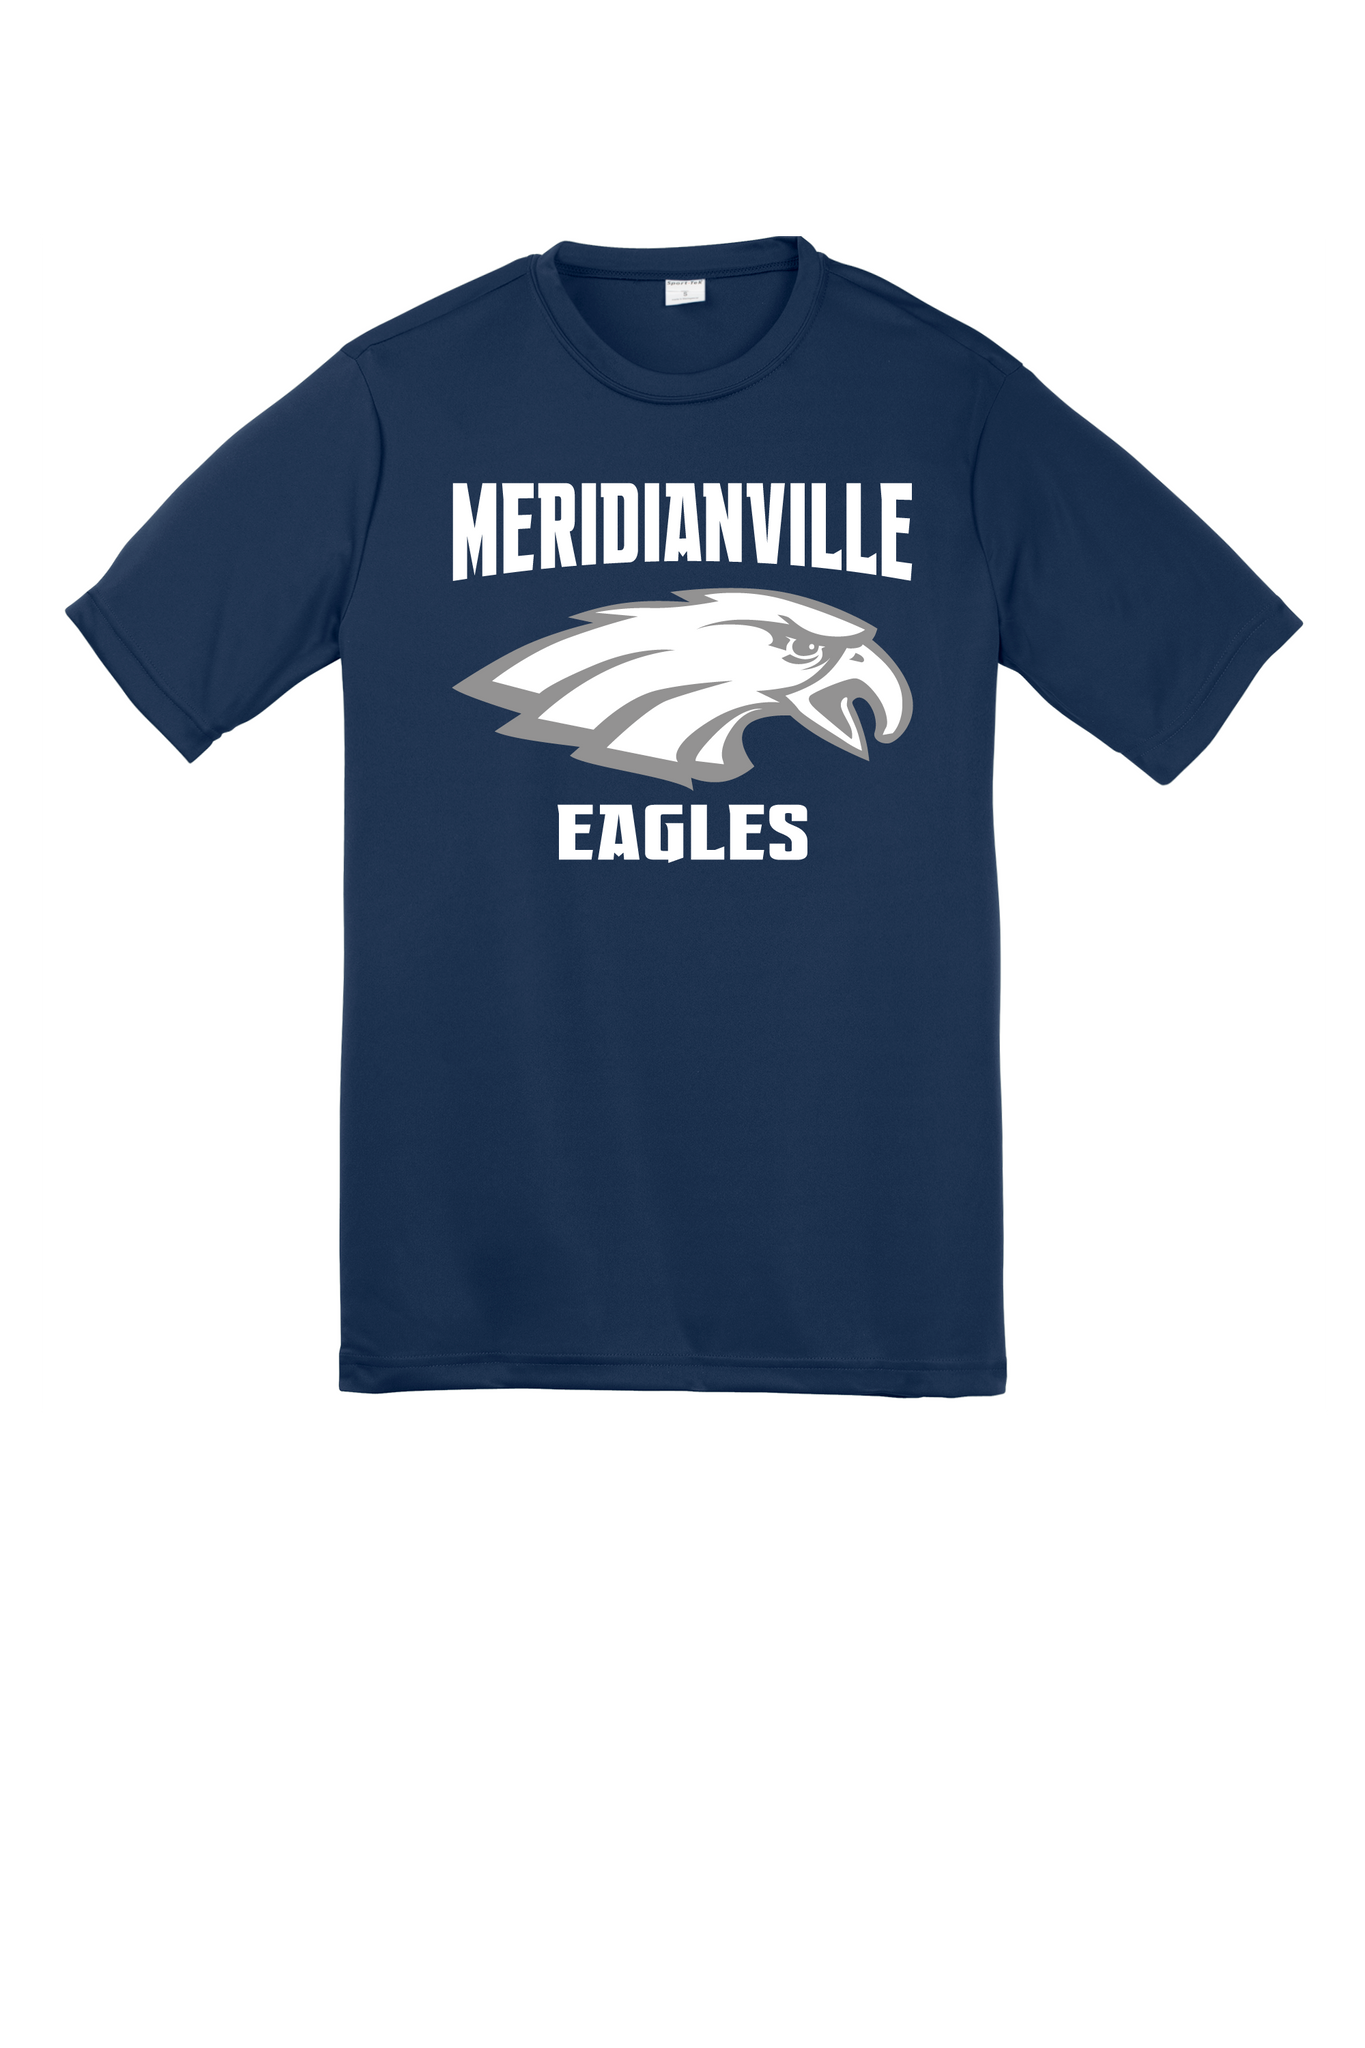 Cotton t-shirt for the family - Meridianville Eagles with NUMBER on back